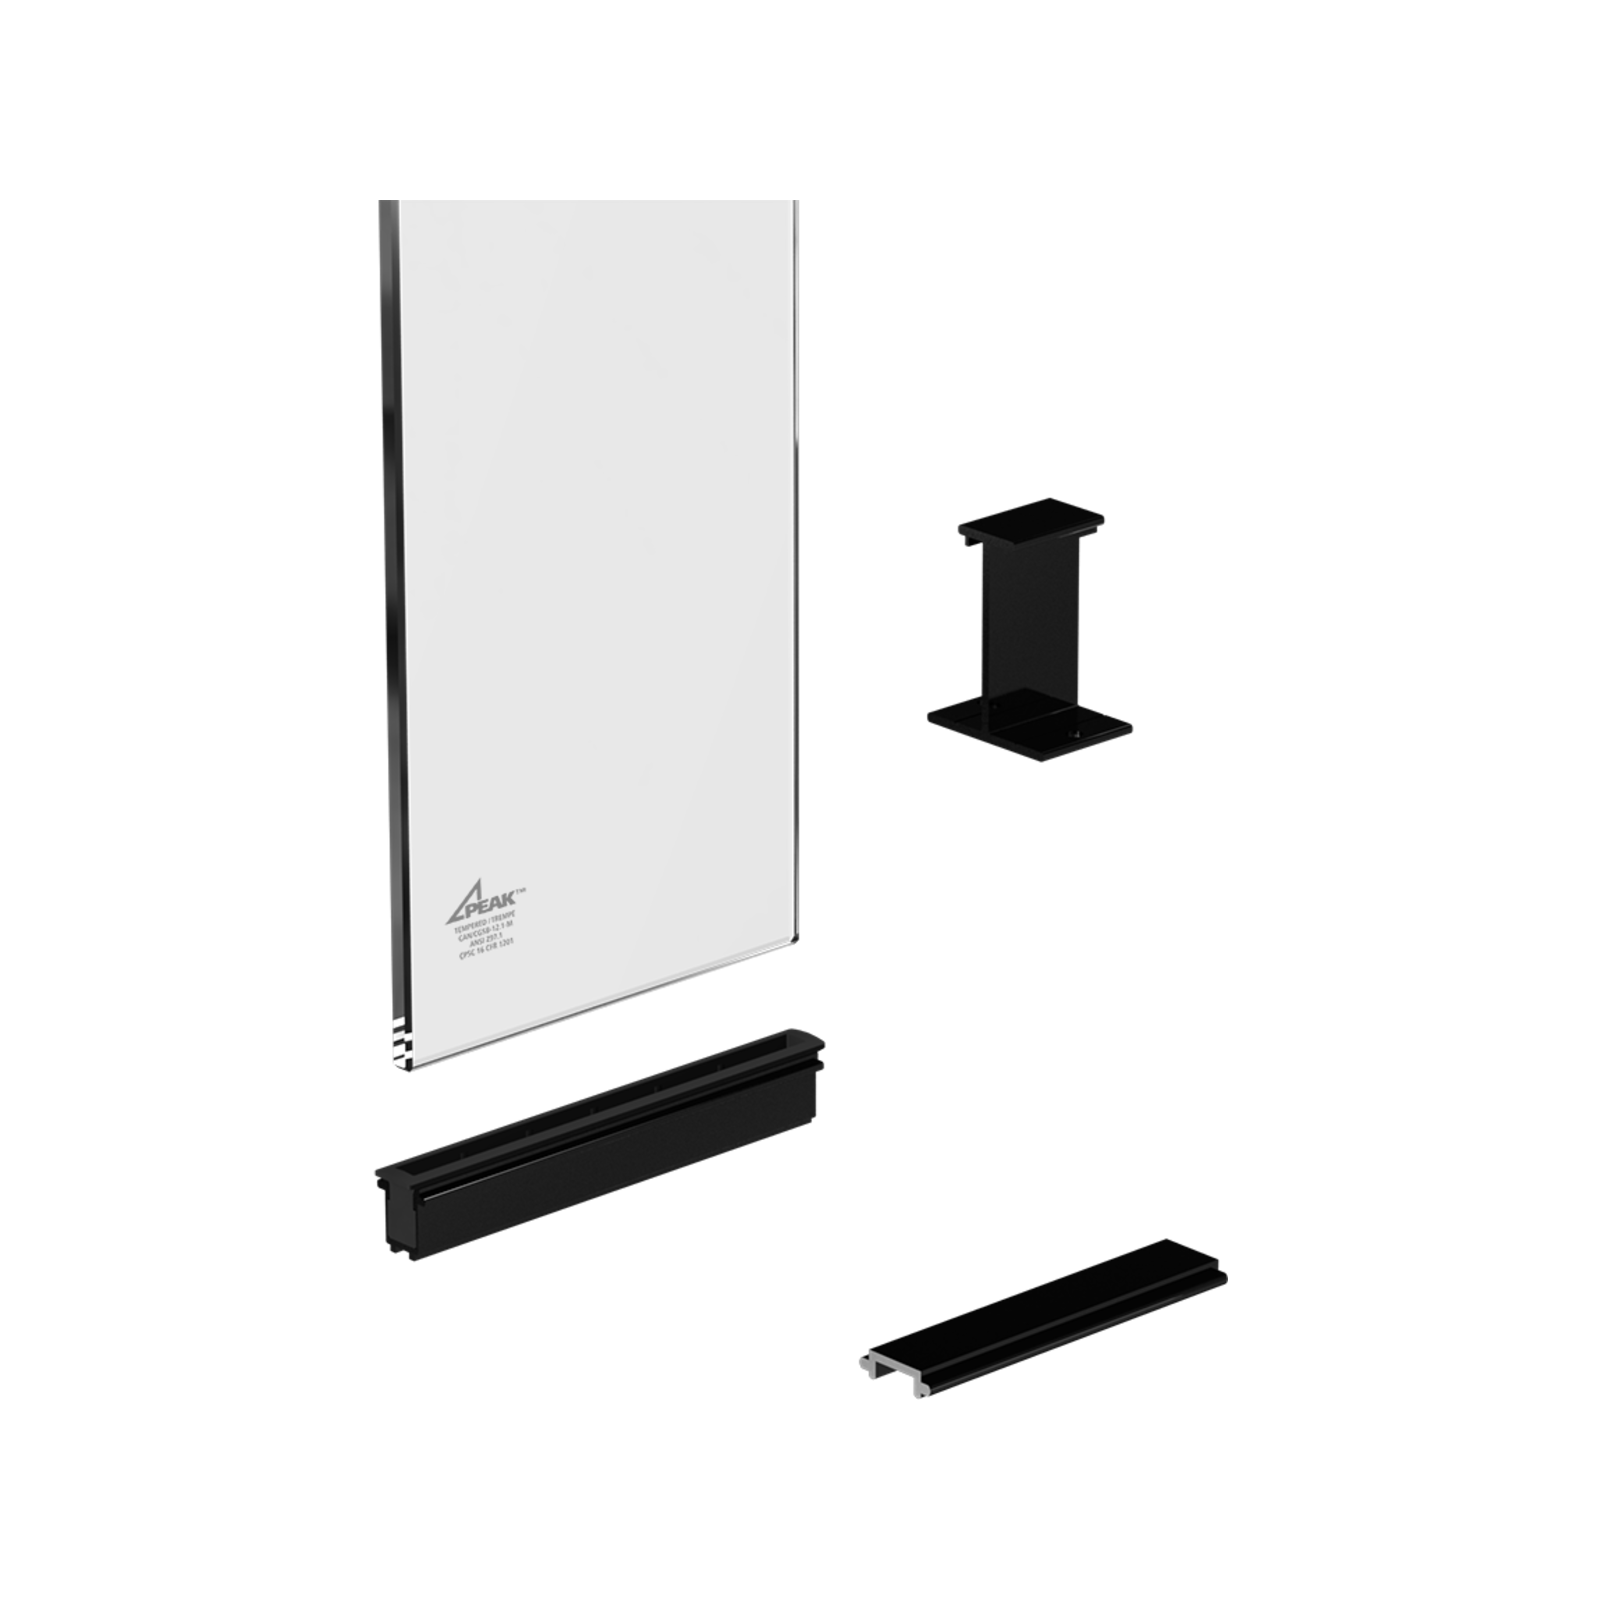 Peak Products 1800mm Black Aluminium Balustrade Sectional Glass Kit With Clear Glass Panels